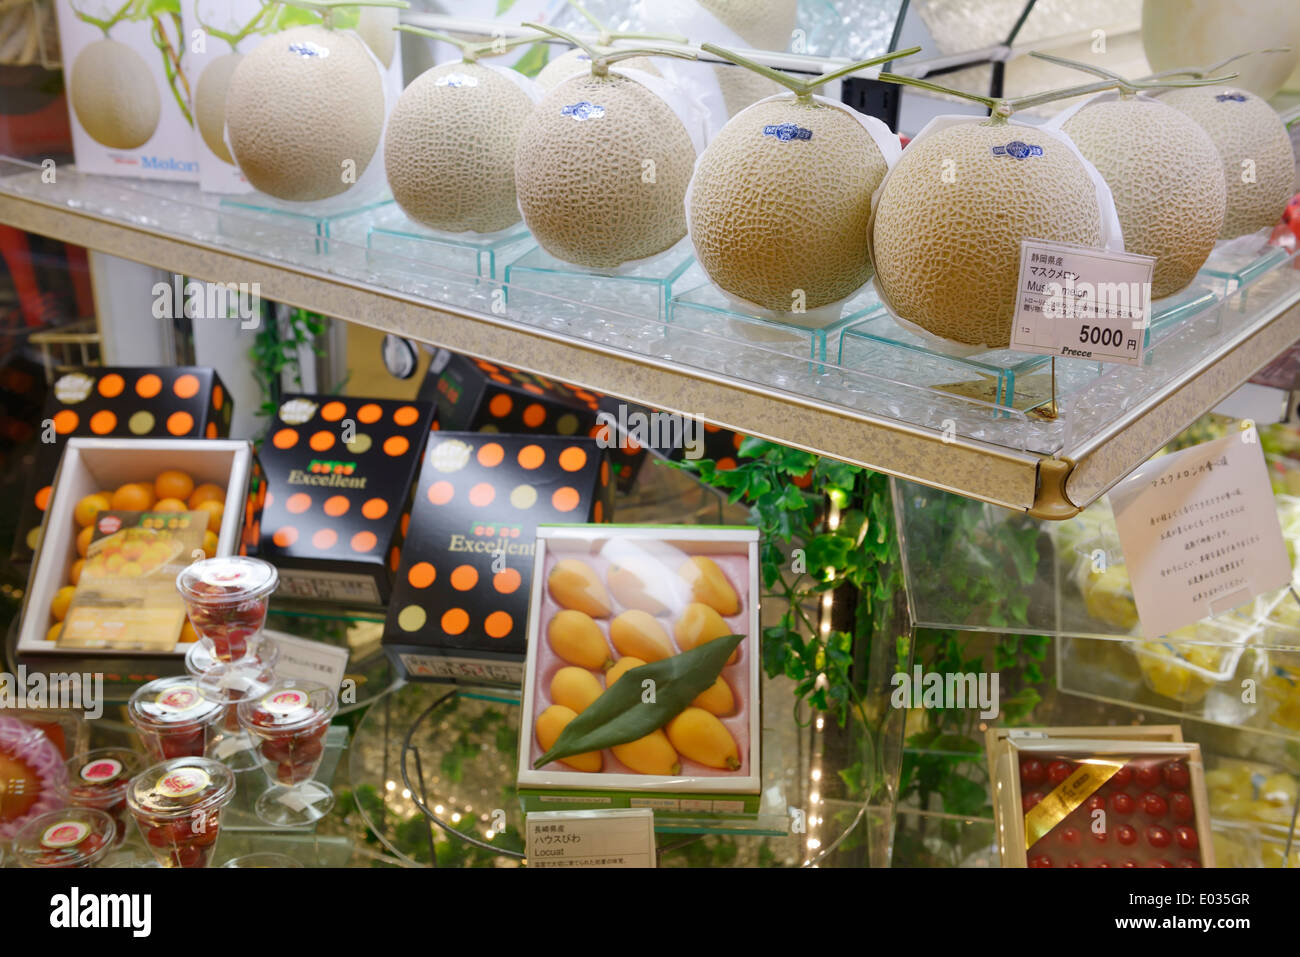 Expensive fruits, melons, loquat on display in a Japanese supermarket. Tokyo, Japan. - Stock Image